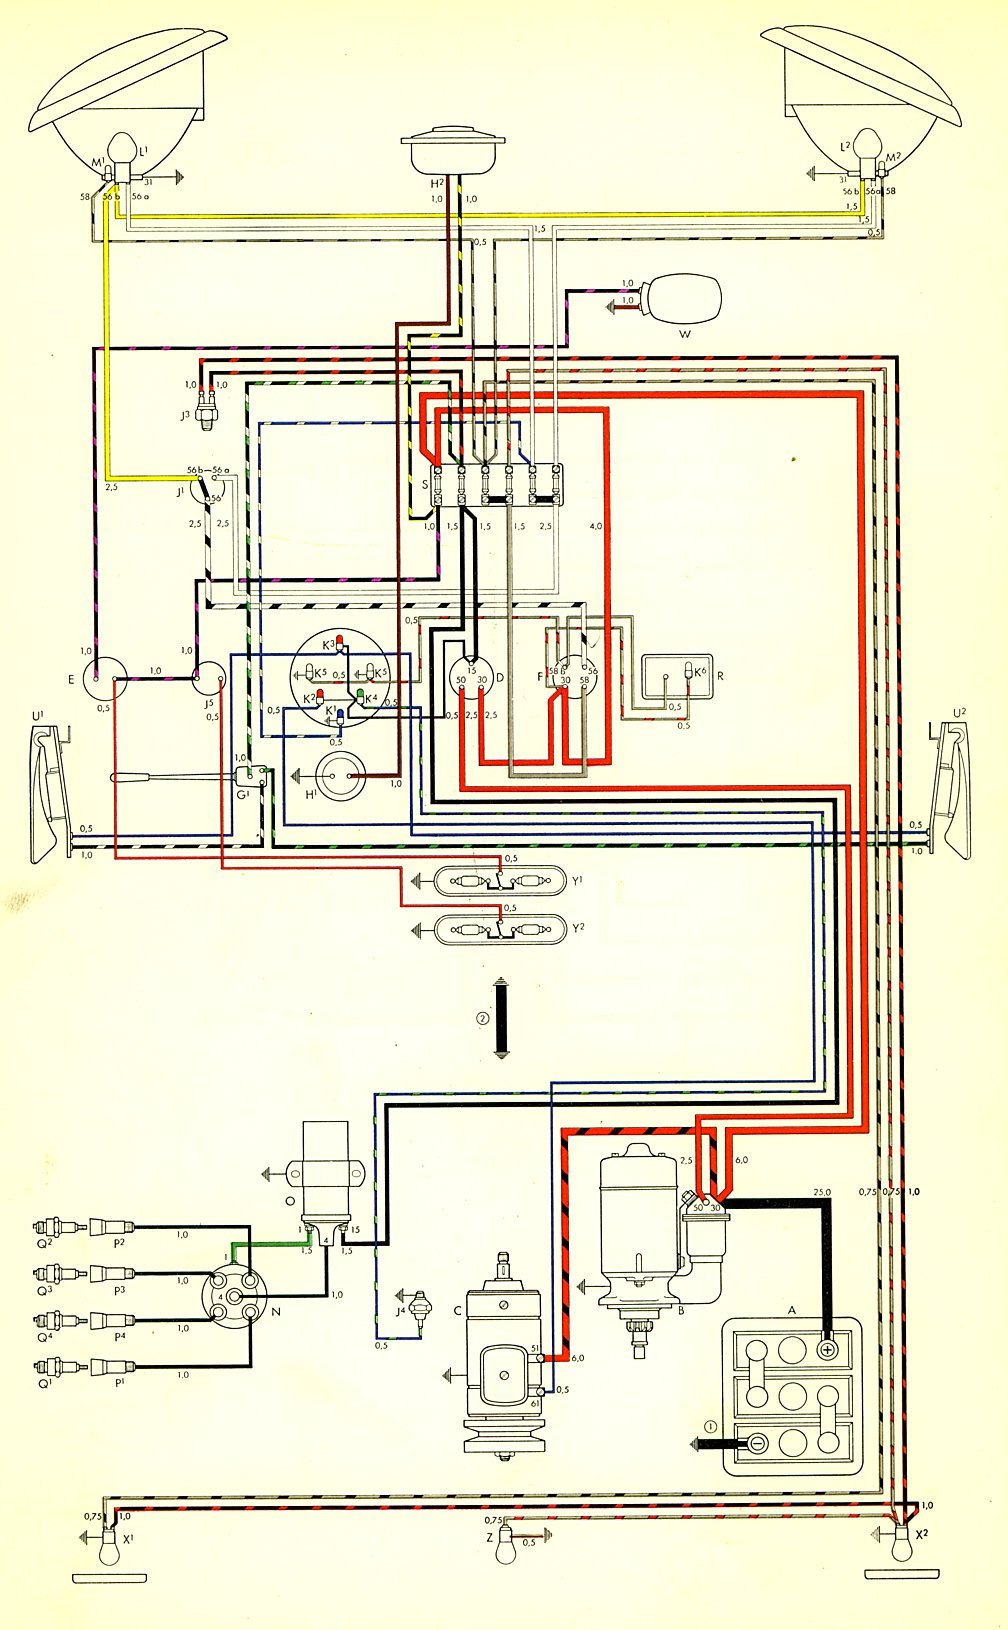 Vw 73 Bus Alternator Wiring Diagram Auto Electrical Taylor 210e Guitar For Voltage Regulator On 1971 Beetle